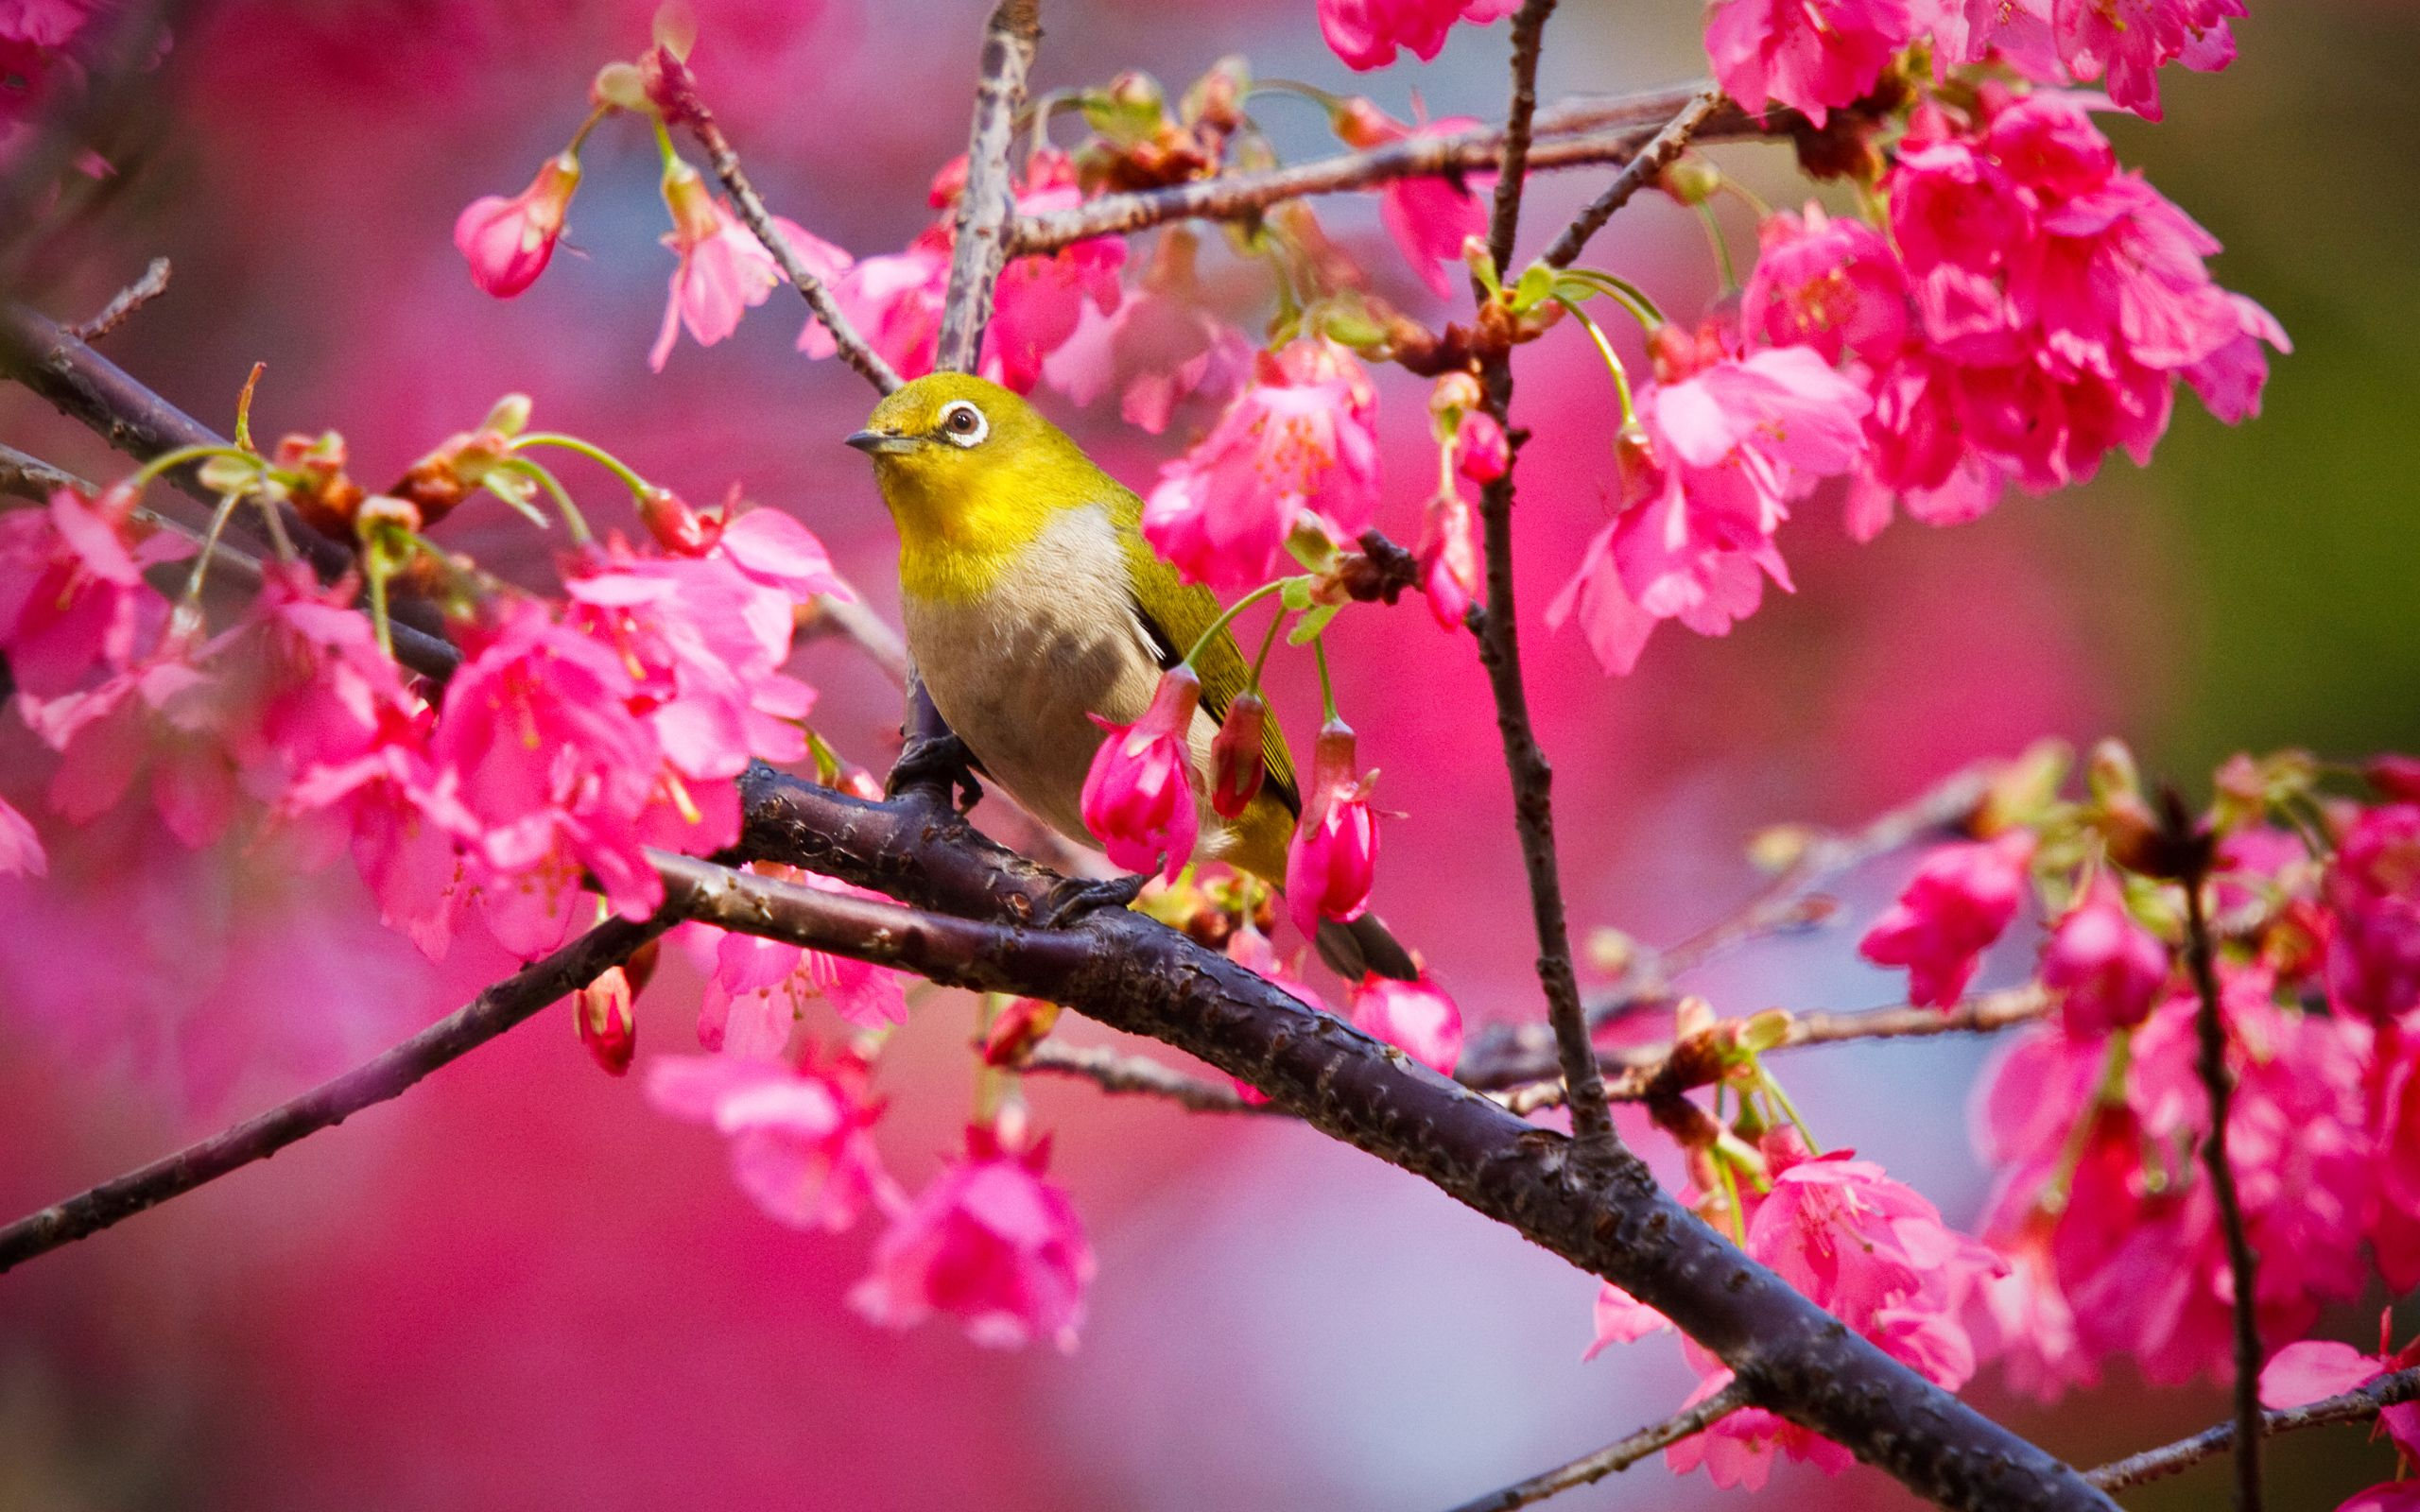 Wallpaper download nice - Mountain Cherry Bird Hd Wallpapers Download Awesome Nice And High Quality Hd Wallpapers